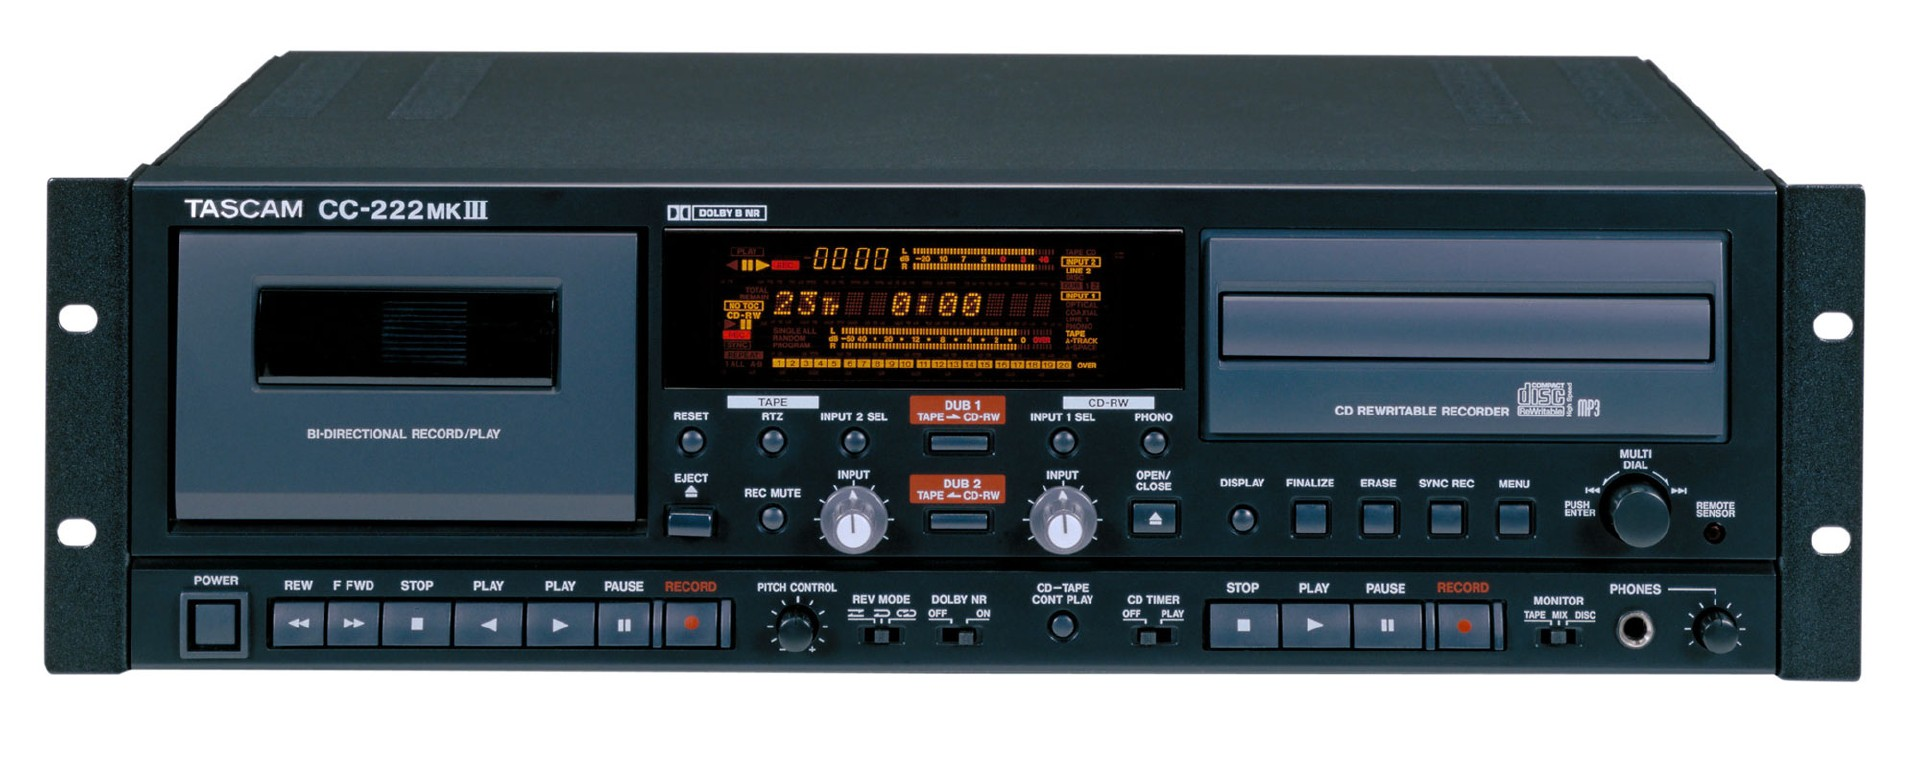 CC-222MKIII | FEATURES | TASCAM - United States